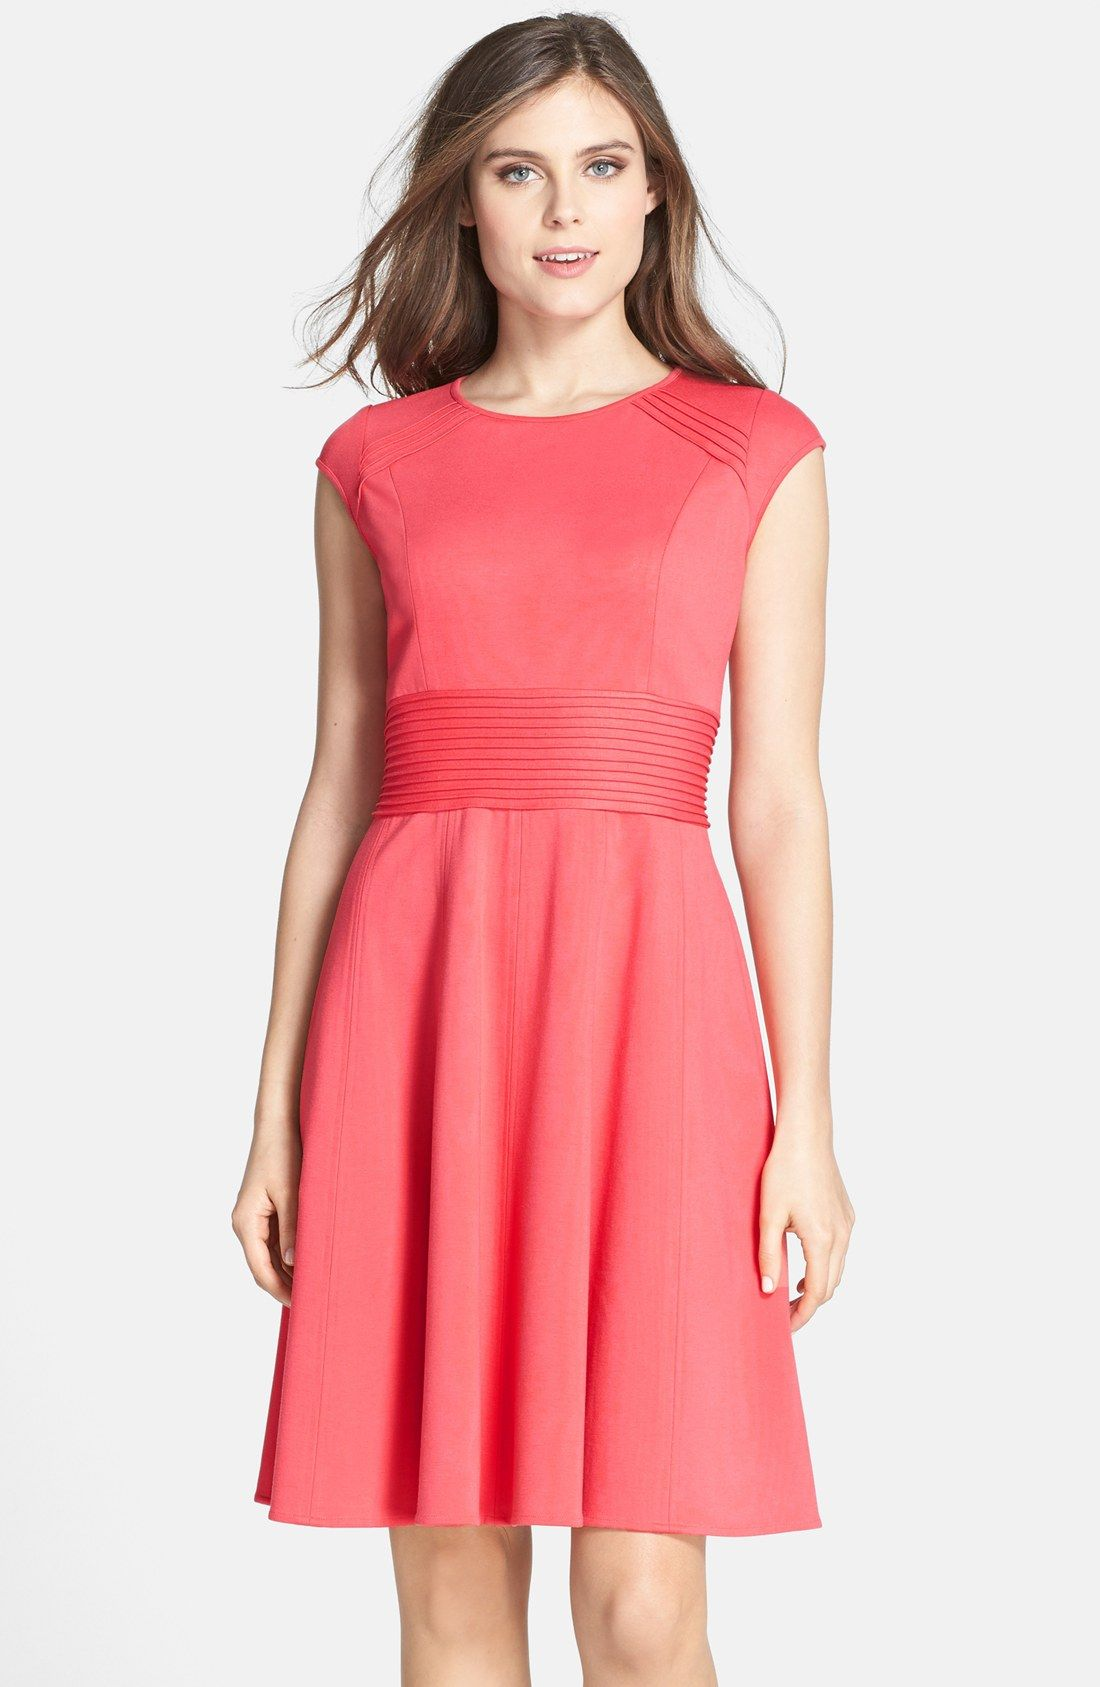 Fit and flare dress wedding  Pintucked Waist Seamed Ponte Knit Fit u Flare Dress   Nordstrom